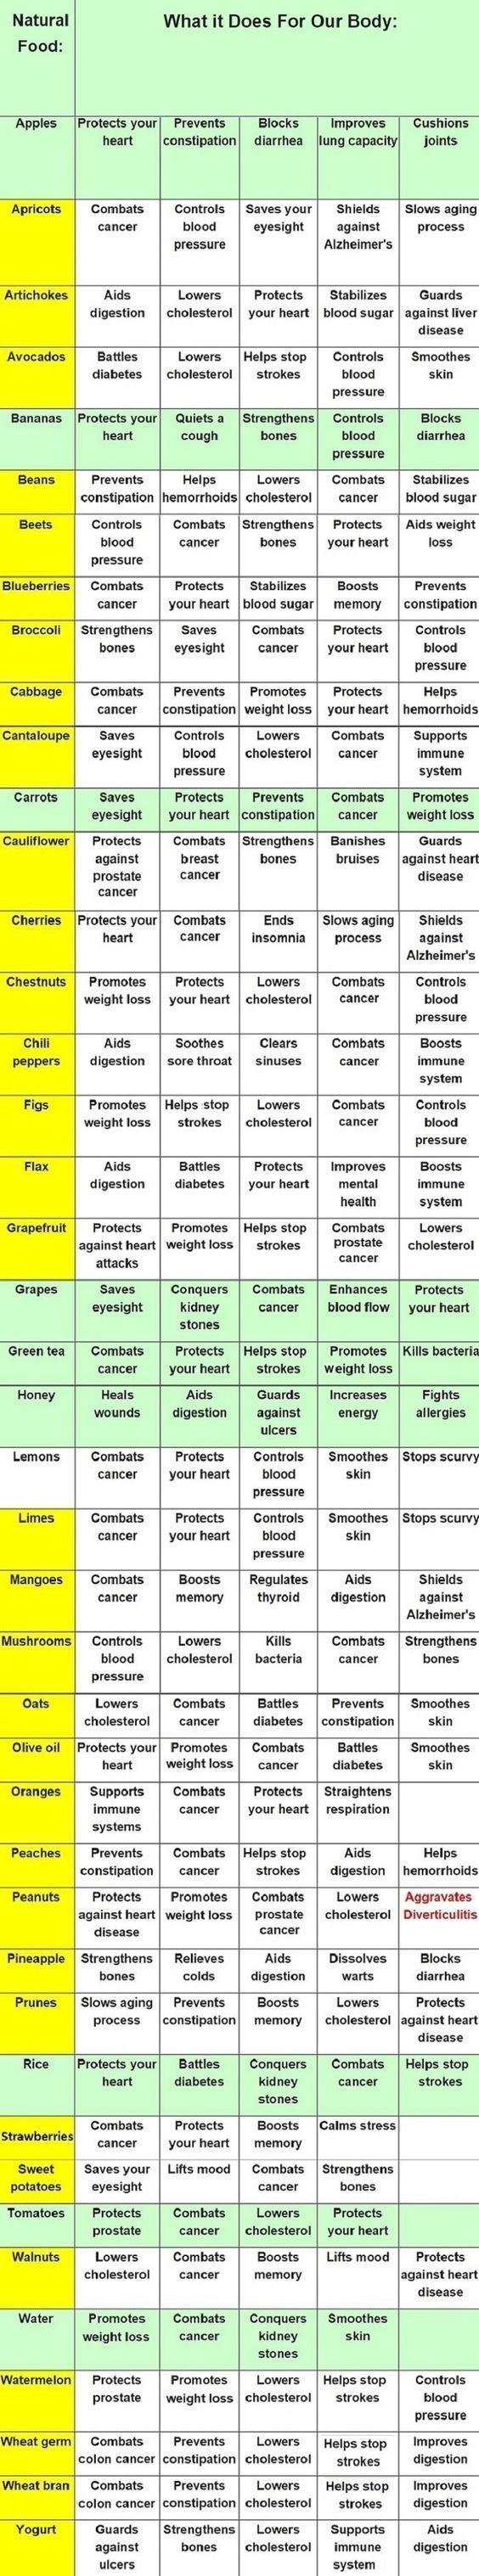 Know your food. Better read this and start eating these awesome natural foods! beaudlux.com